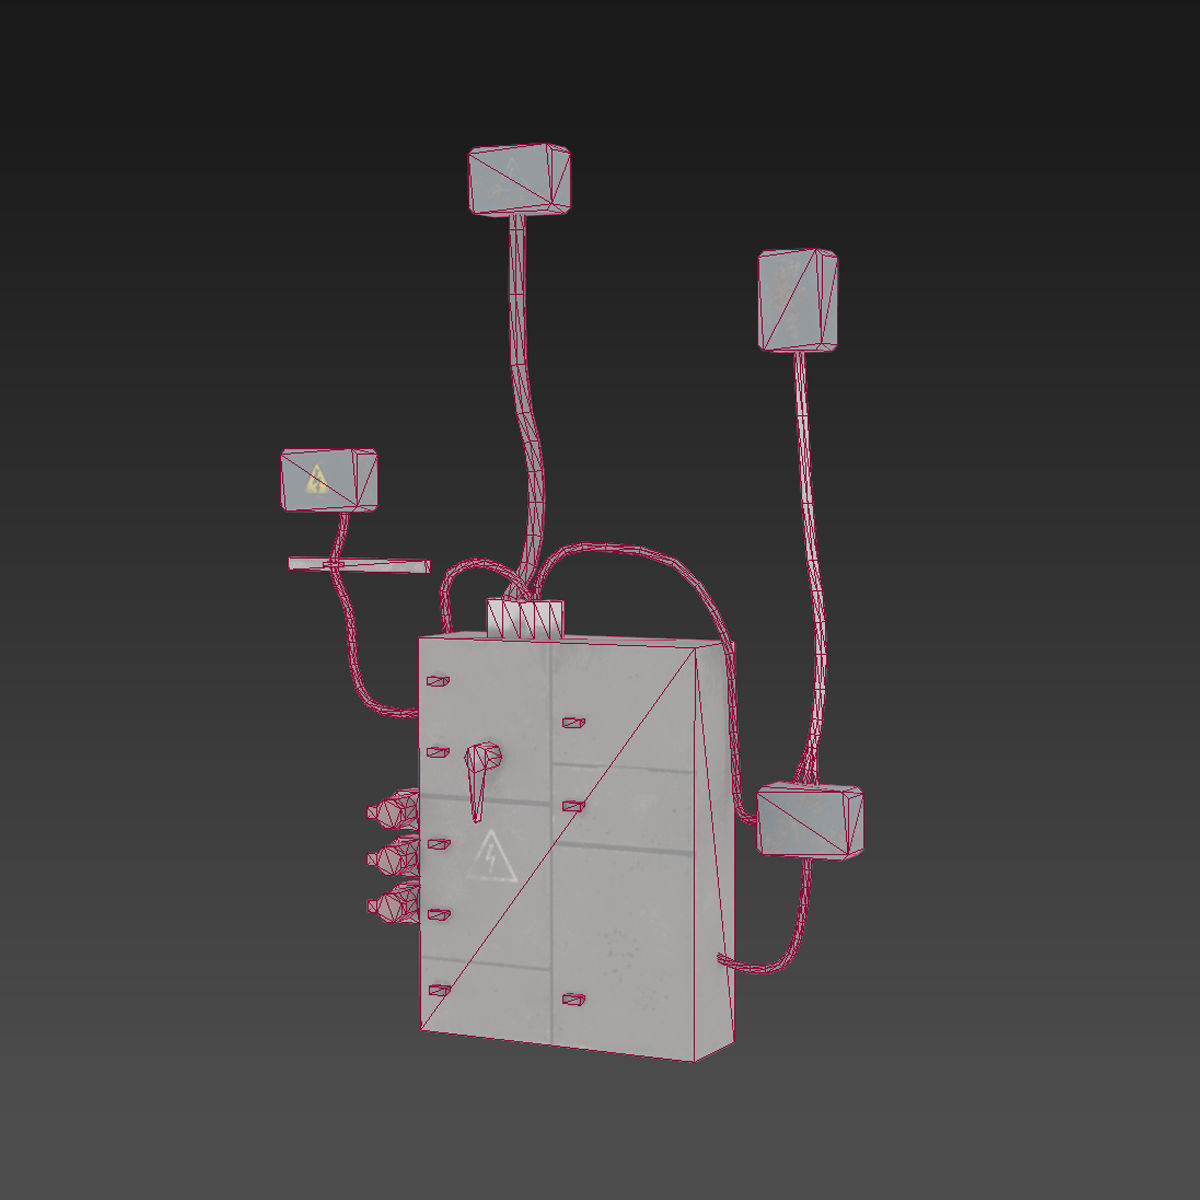 Old Fuse Box Realtime Multi Game Engine Aaa Quality Pbr Asset 1 3d Model Low Poly